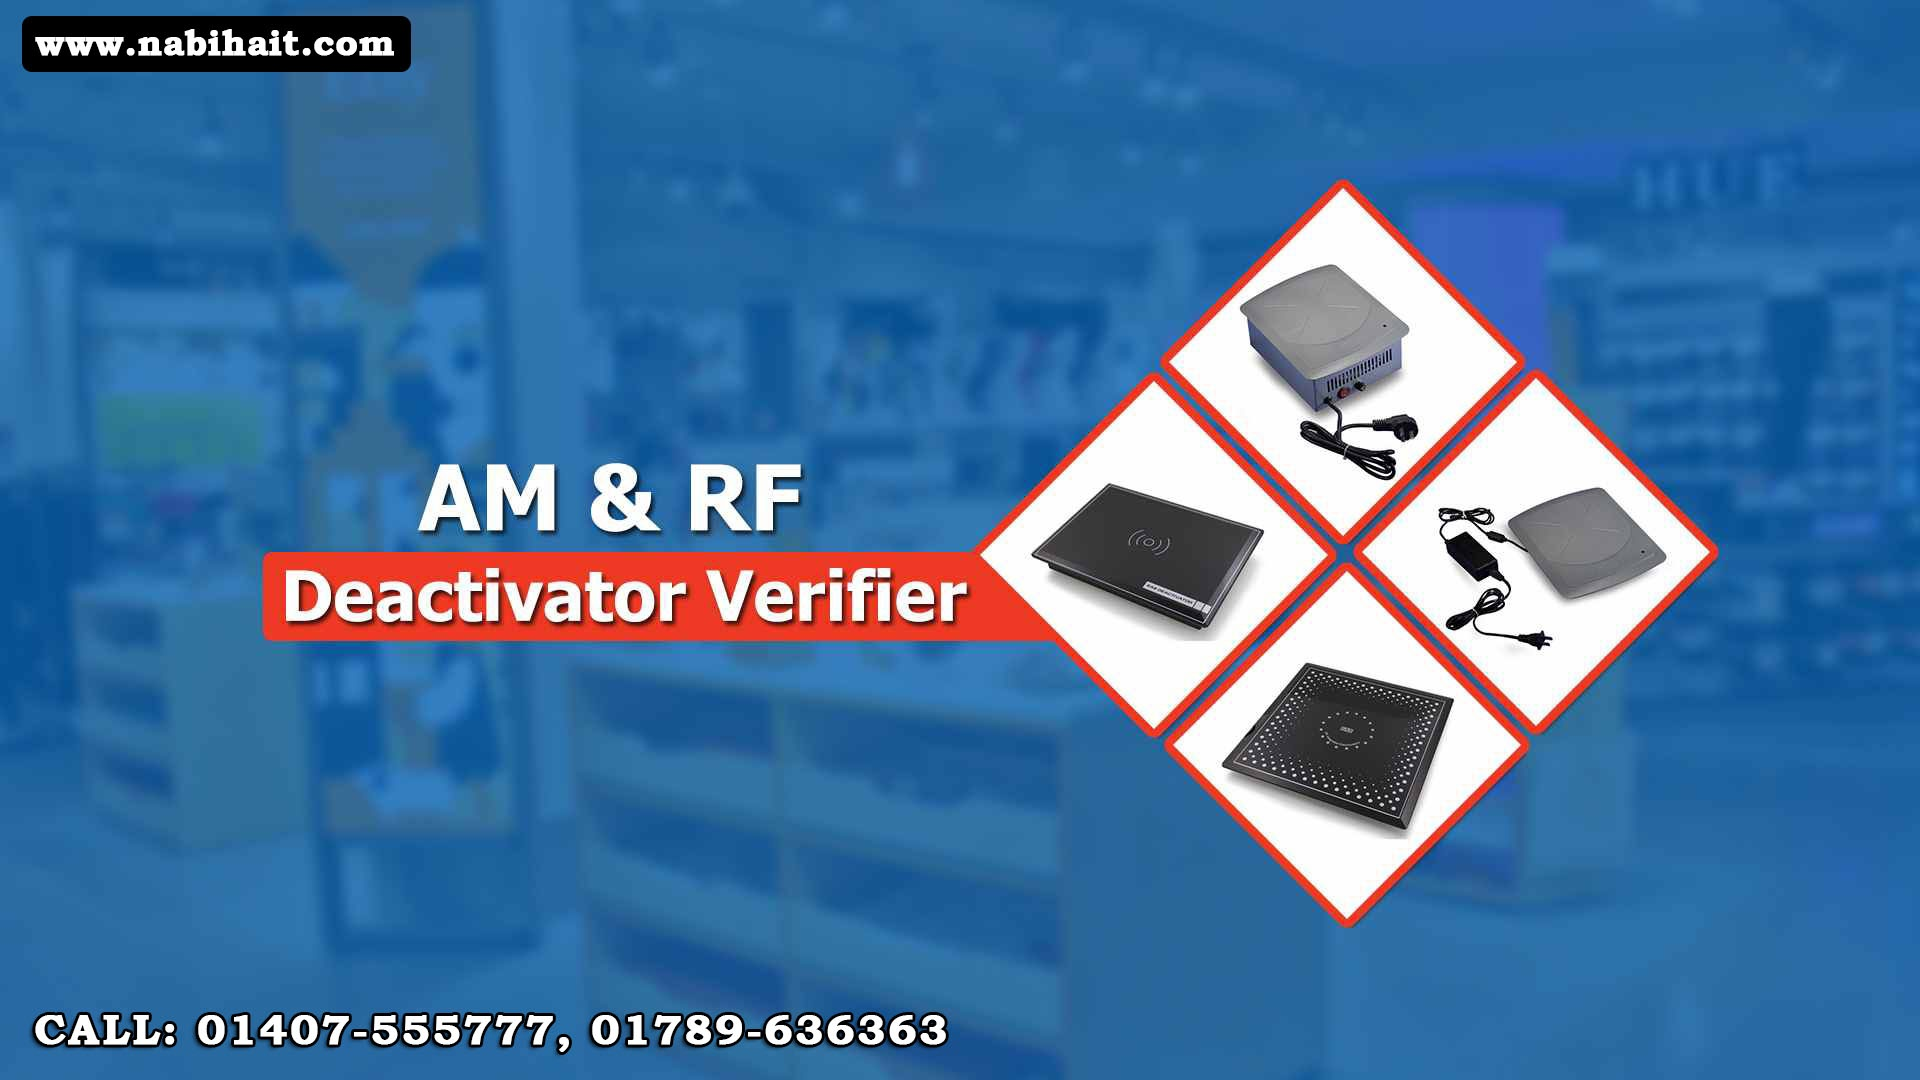 Security Tag Deactivator & Detector in Bangladesh